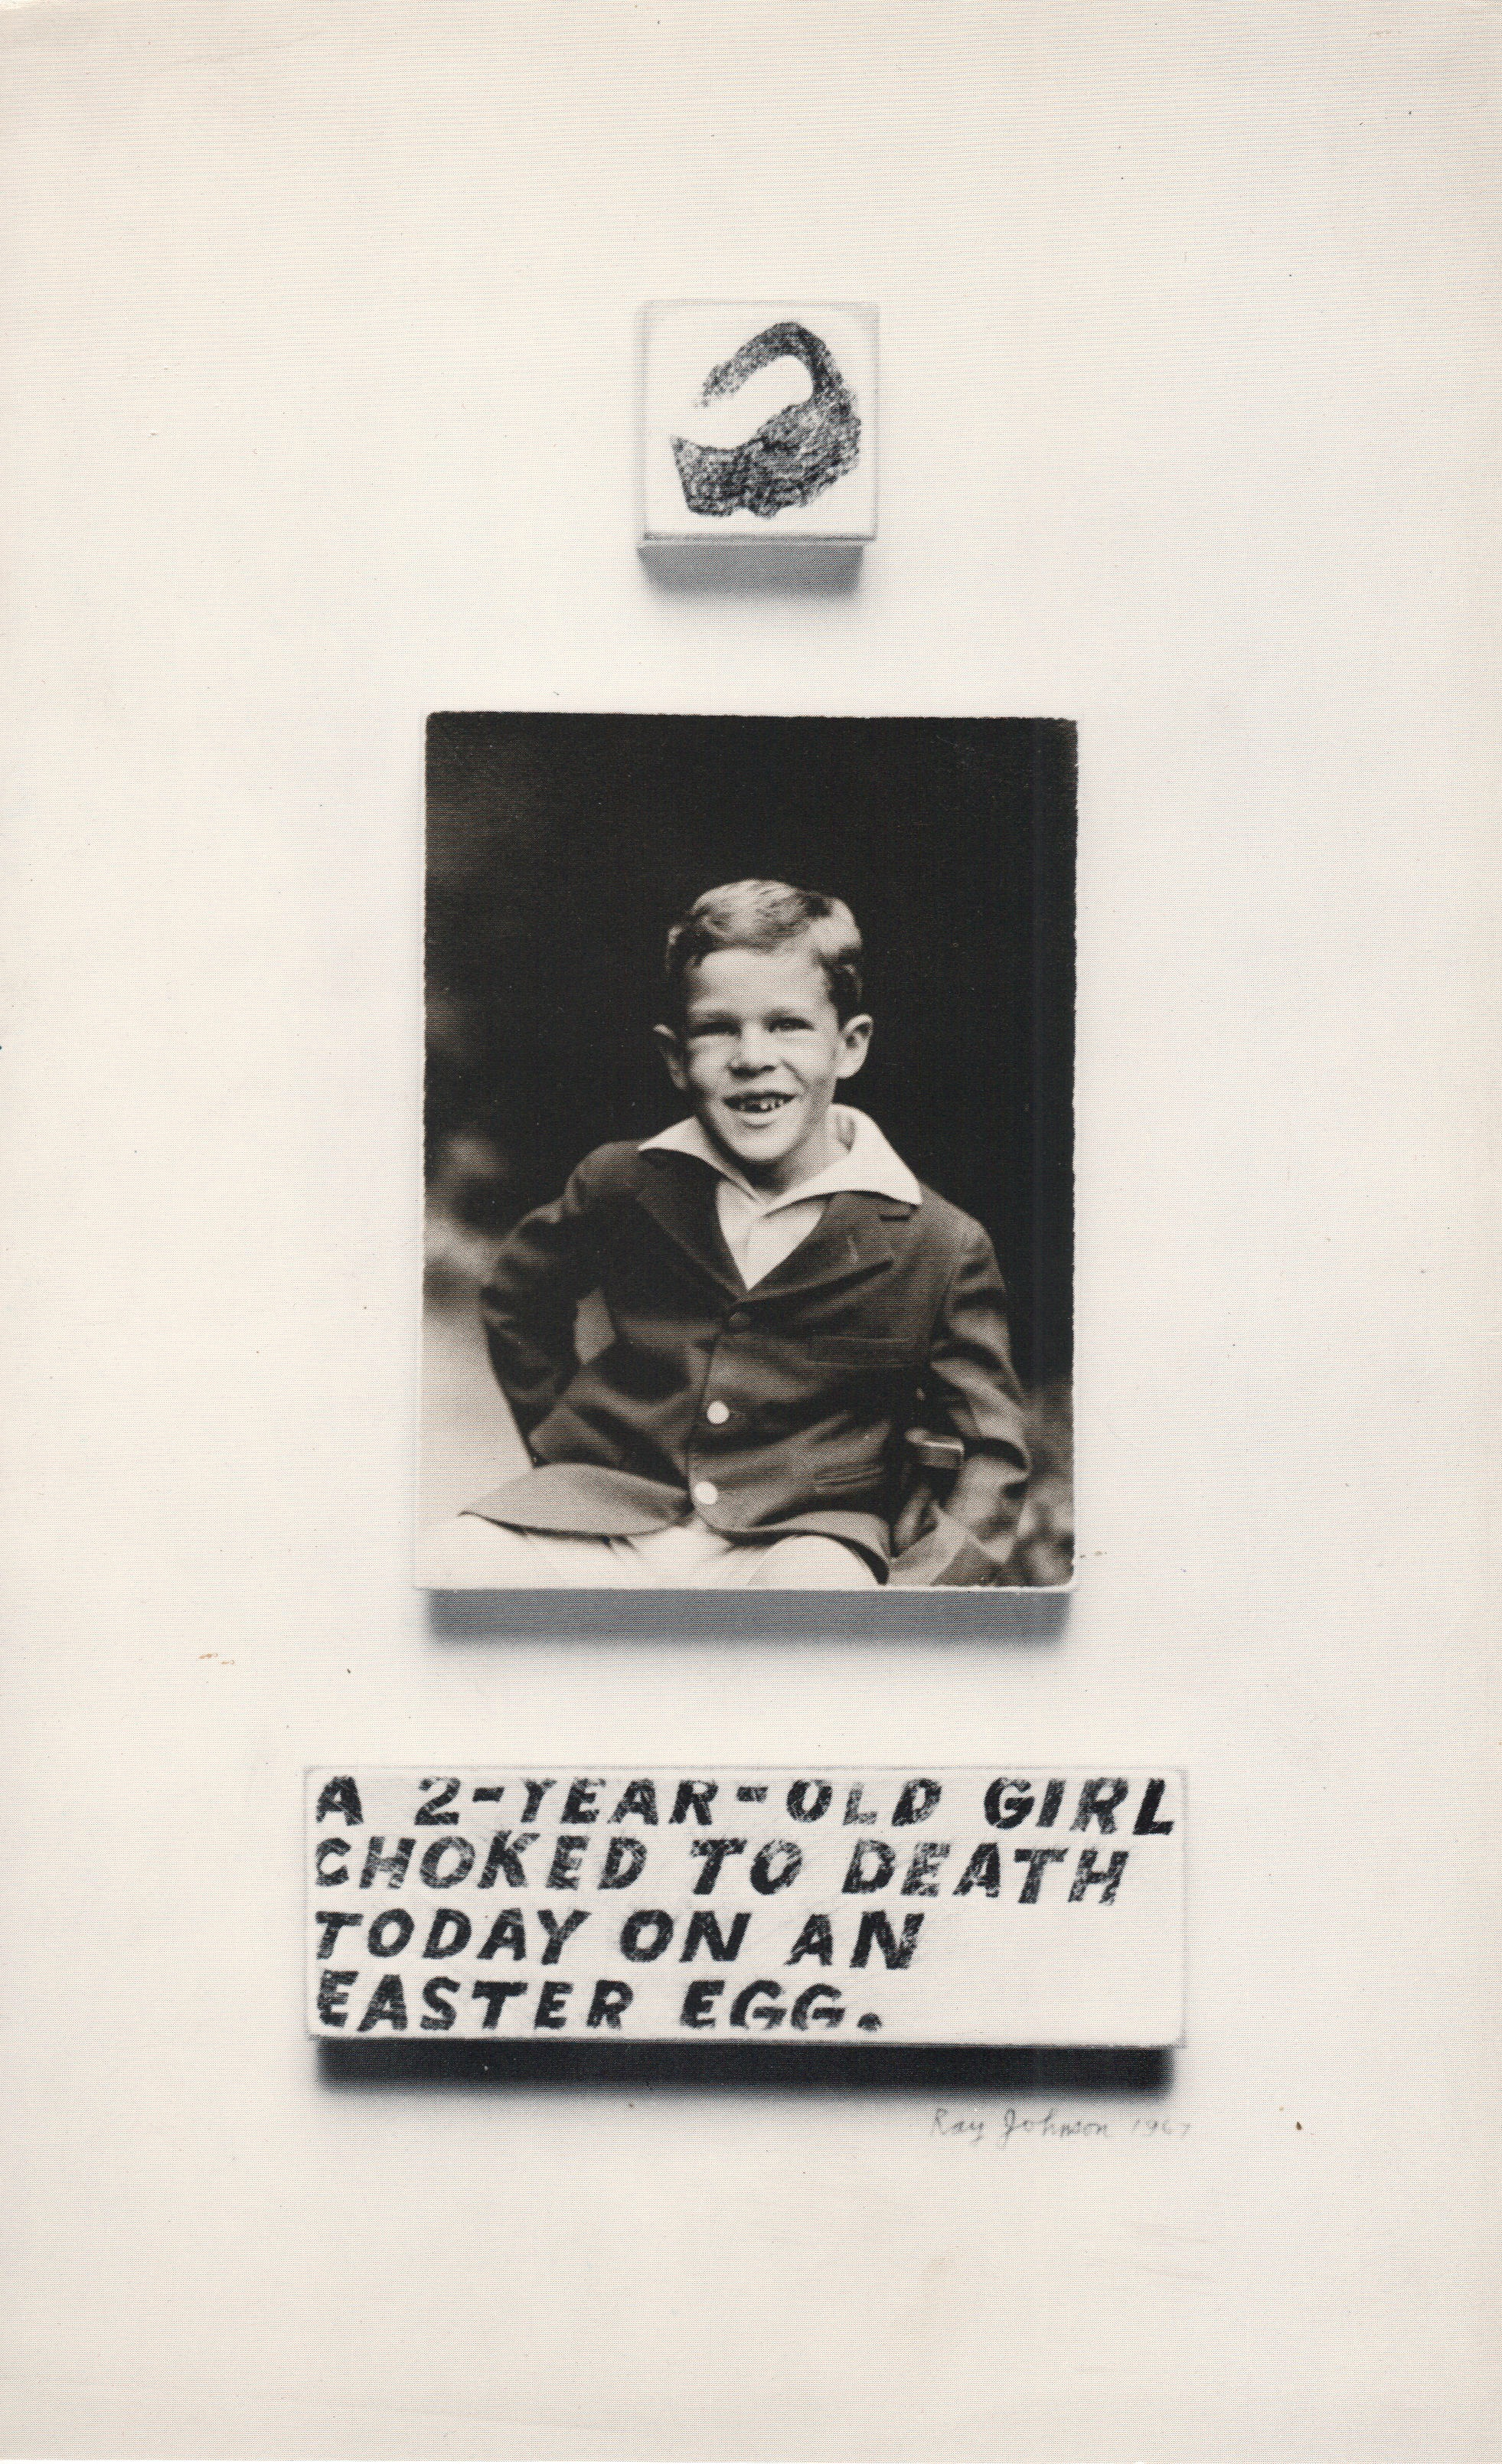 A 2-YEAR-OLD GIRL CHOKED TODAY ON AN EASTER EGG with childhood photo of Dick Higgins Ray Johnson, 1967 Collection of the Ray Johnson Estate at Richard L. Feigen & Co., New York